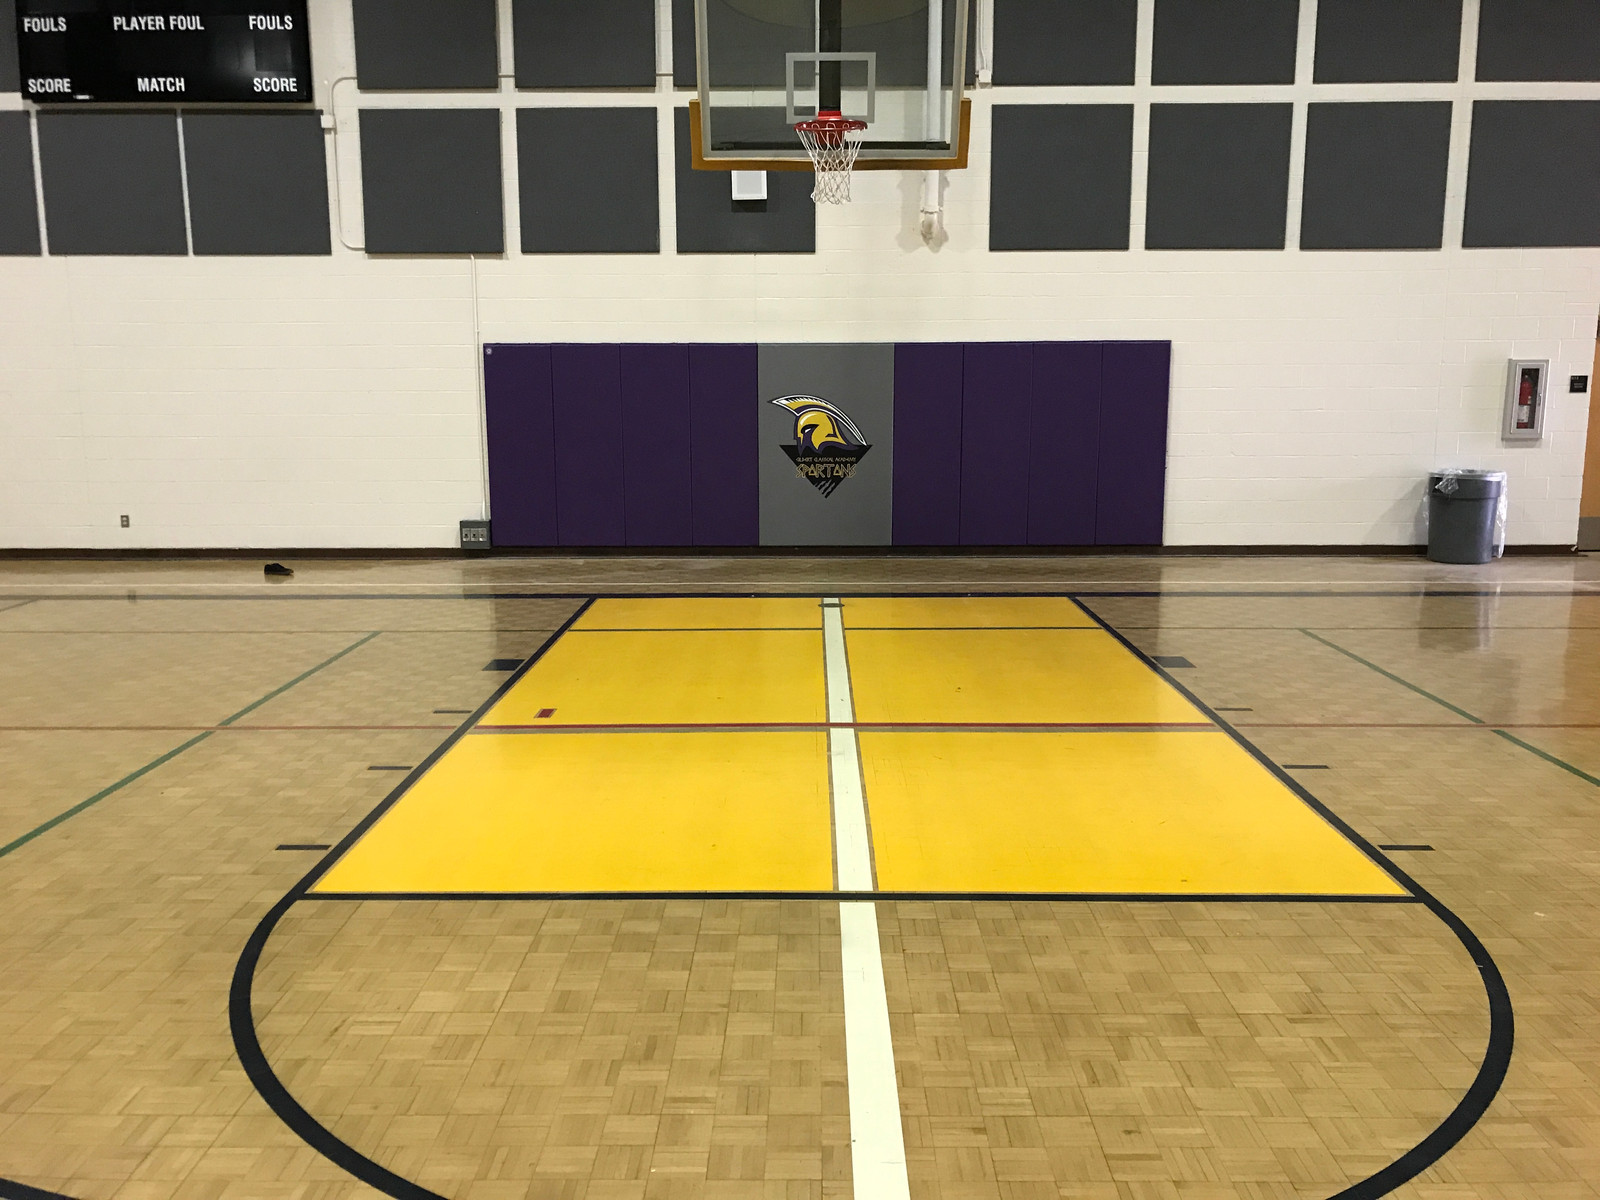 Gym Wall Padding Wrestling Mats Sideline Chairs